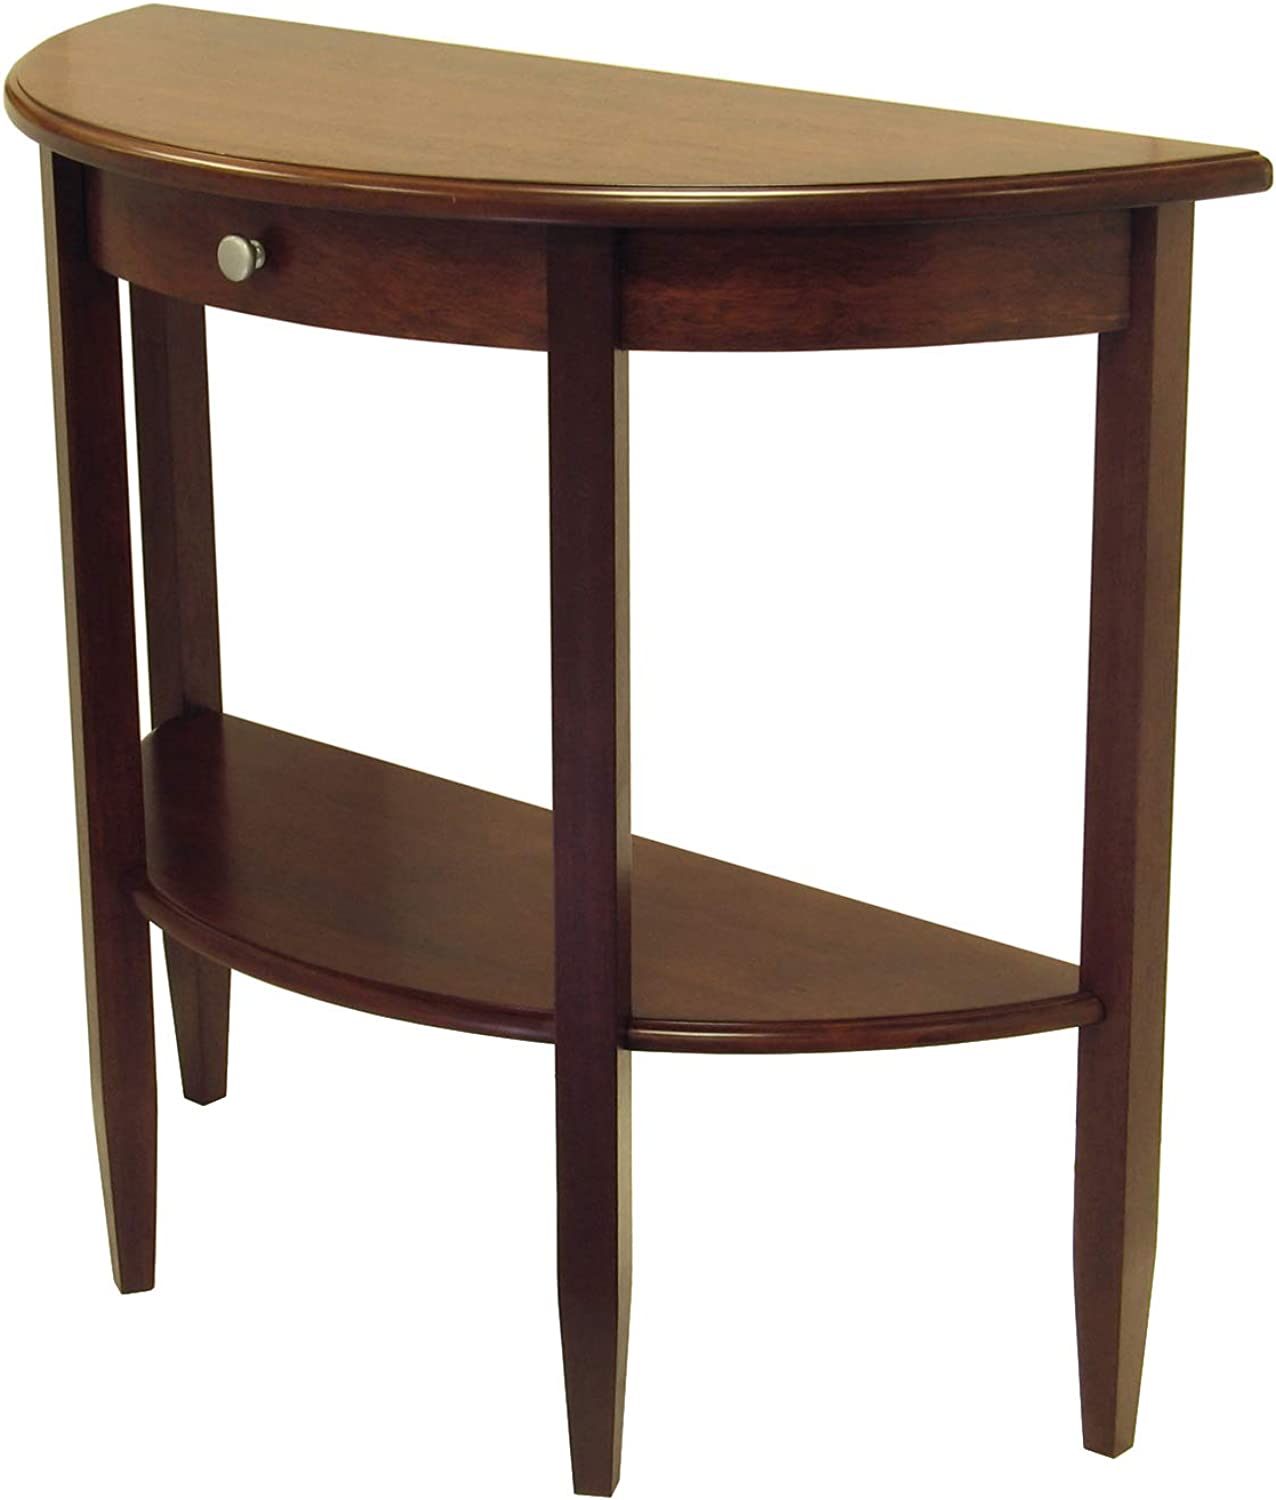 Winsome Wood Half Moon 1-Drawer Hall Table, Antique Walnut